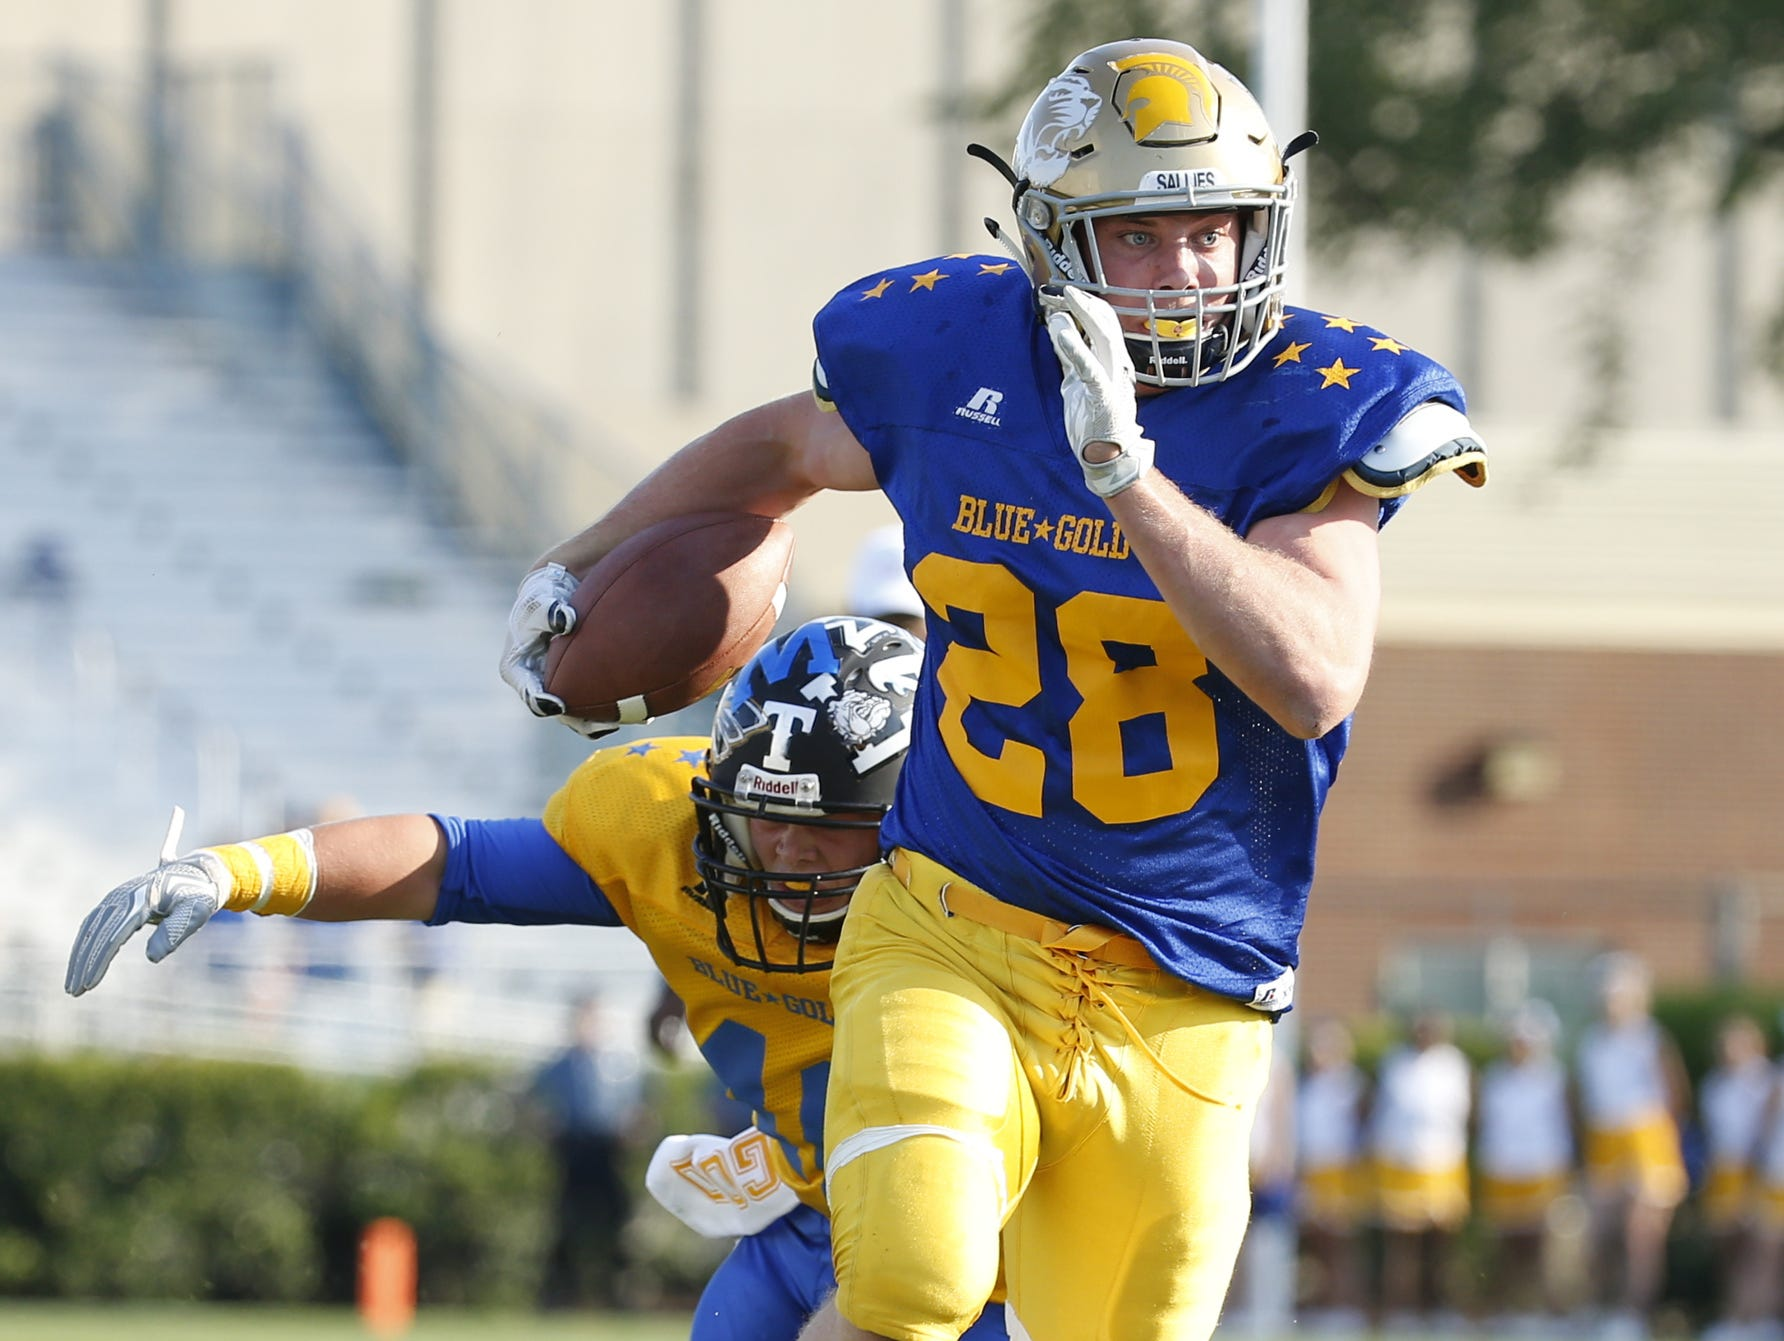 Blue's Colby Reeder of Salesianum gets past the Gold defense for the first of his two touchdowns in the first half of the DFRC Blue Gold All-Star game at Delaware Stadium Saturday. His second came on a Blue-Gold record 100-yard interception return.